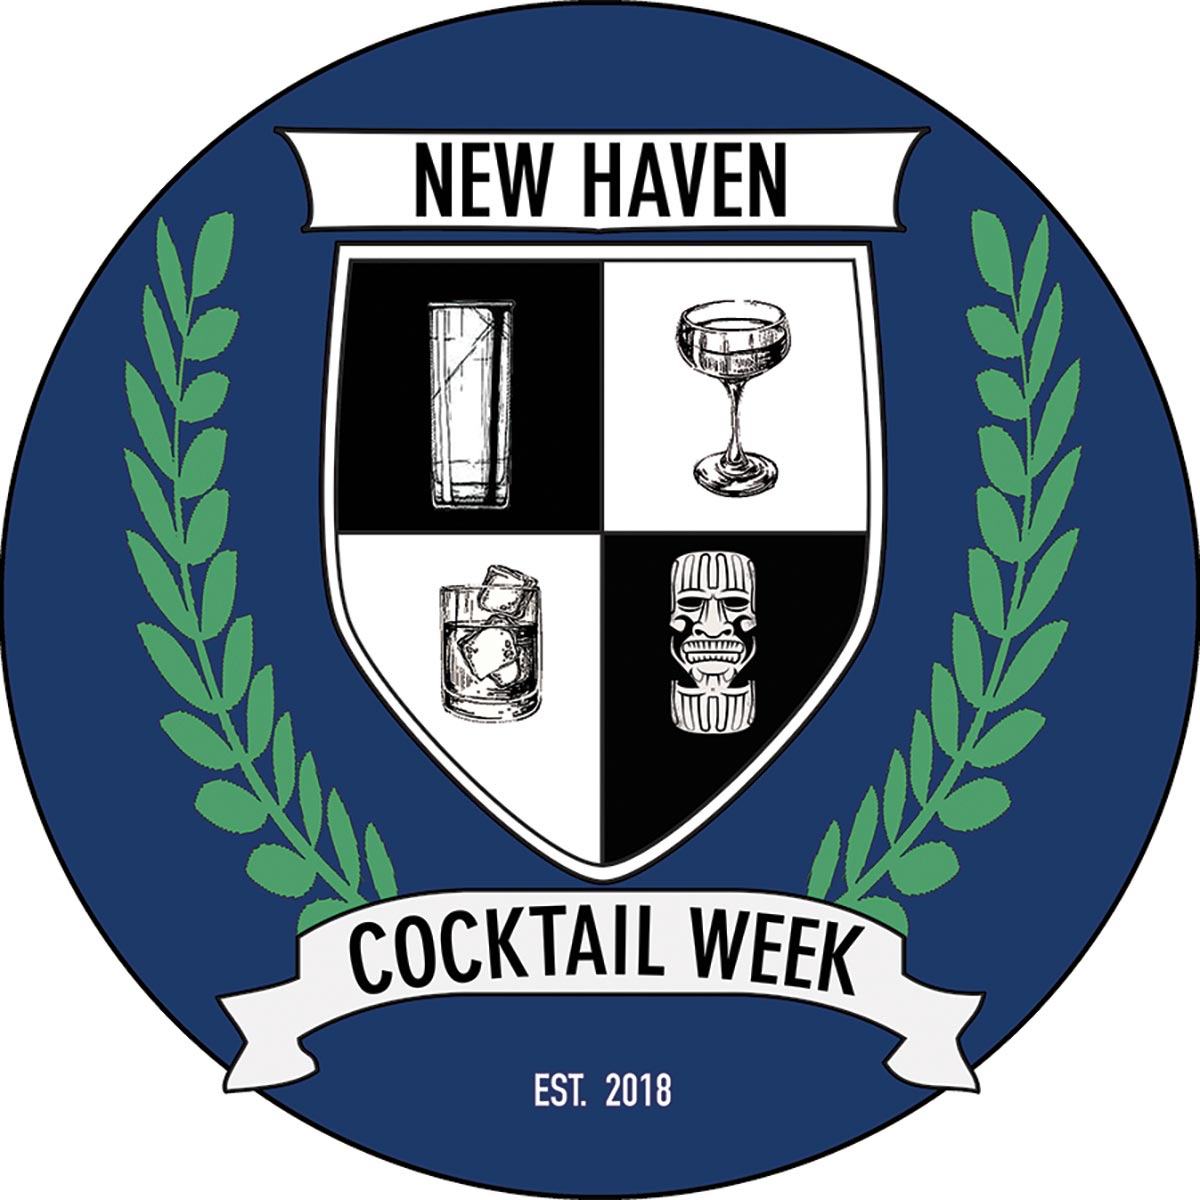 New Haven Cocktail Week Schedule of Events Released